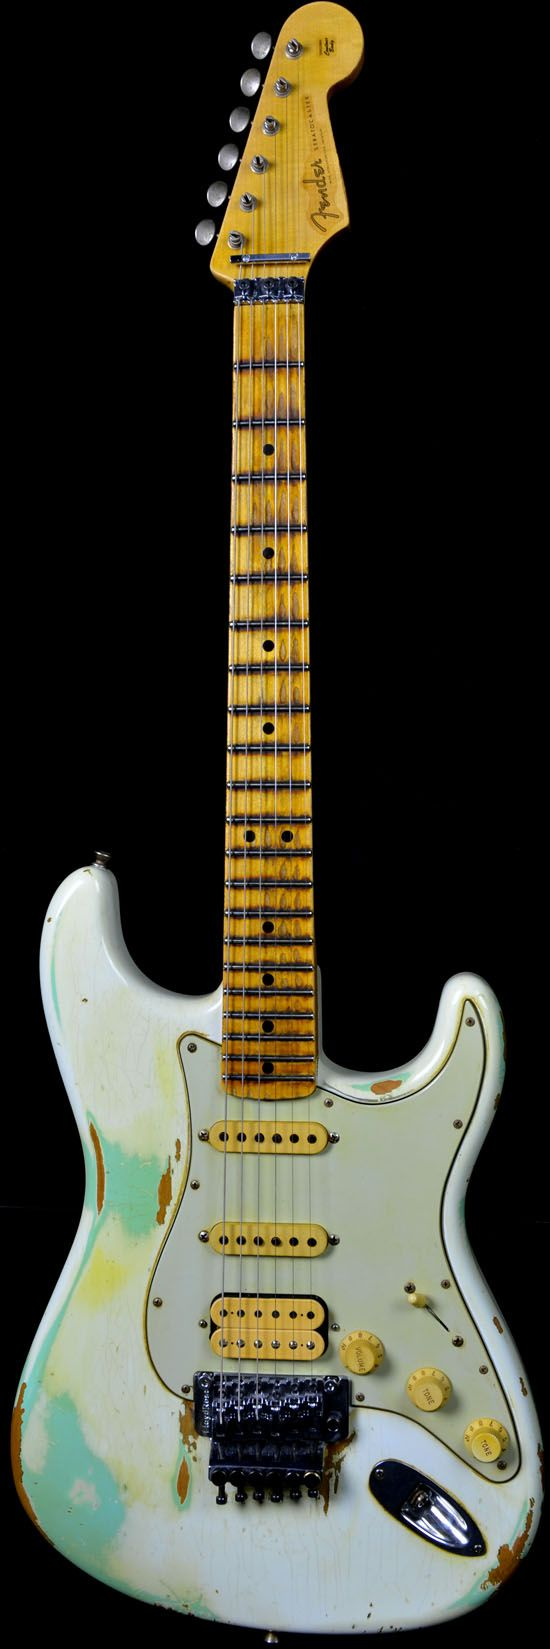 Fender 1960 Stratocaster White Lightning: My guitare! (no greenish paint on mine, though. Very vintage too. Though:)